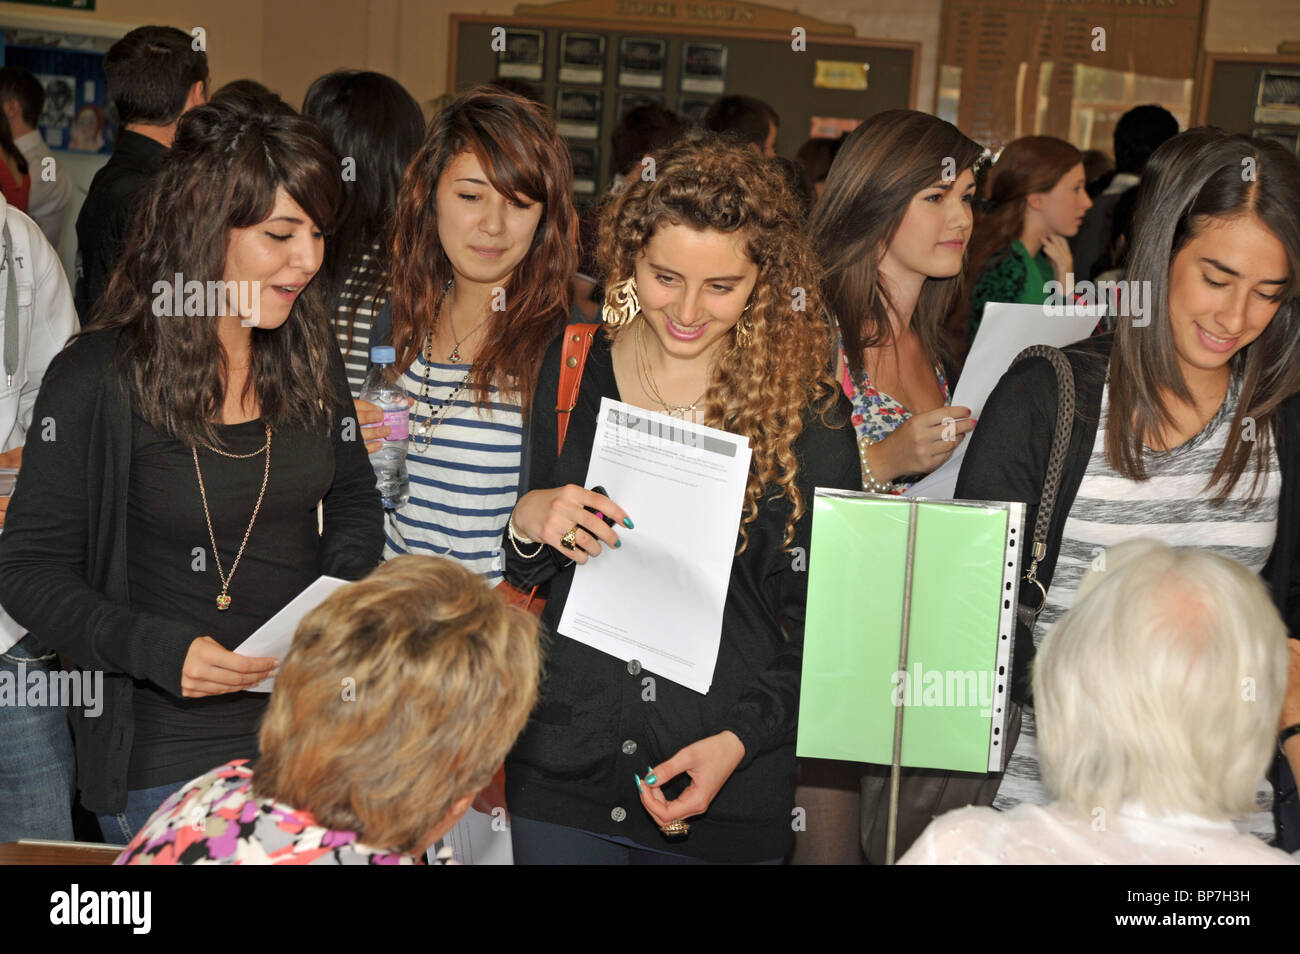 Female sixth form students getting their A Level results at school, UK - Stock Image